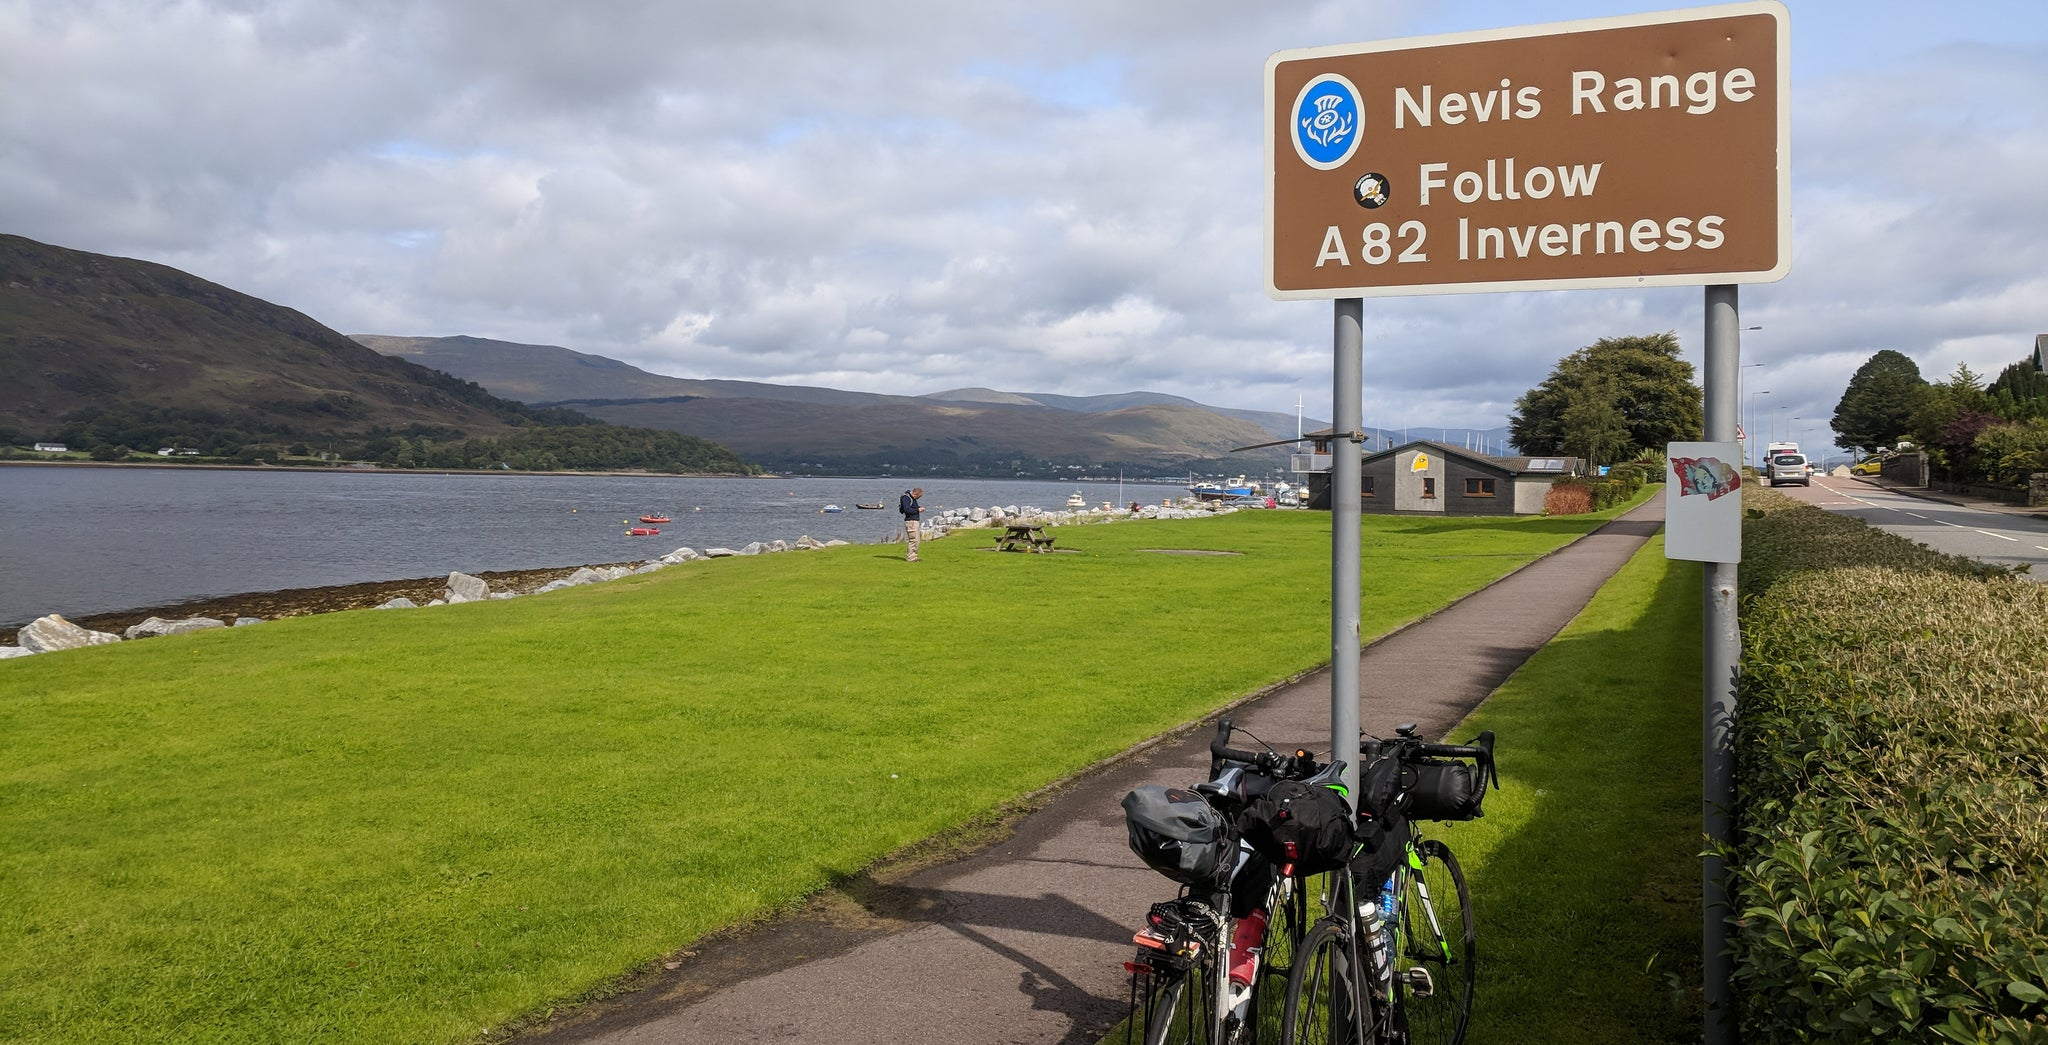 Cycle Tour Three Peaks Challenge Scotland Ben Nevis